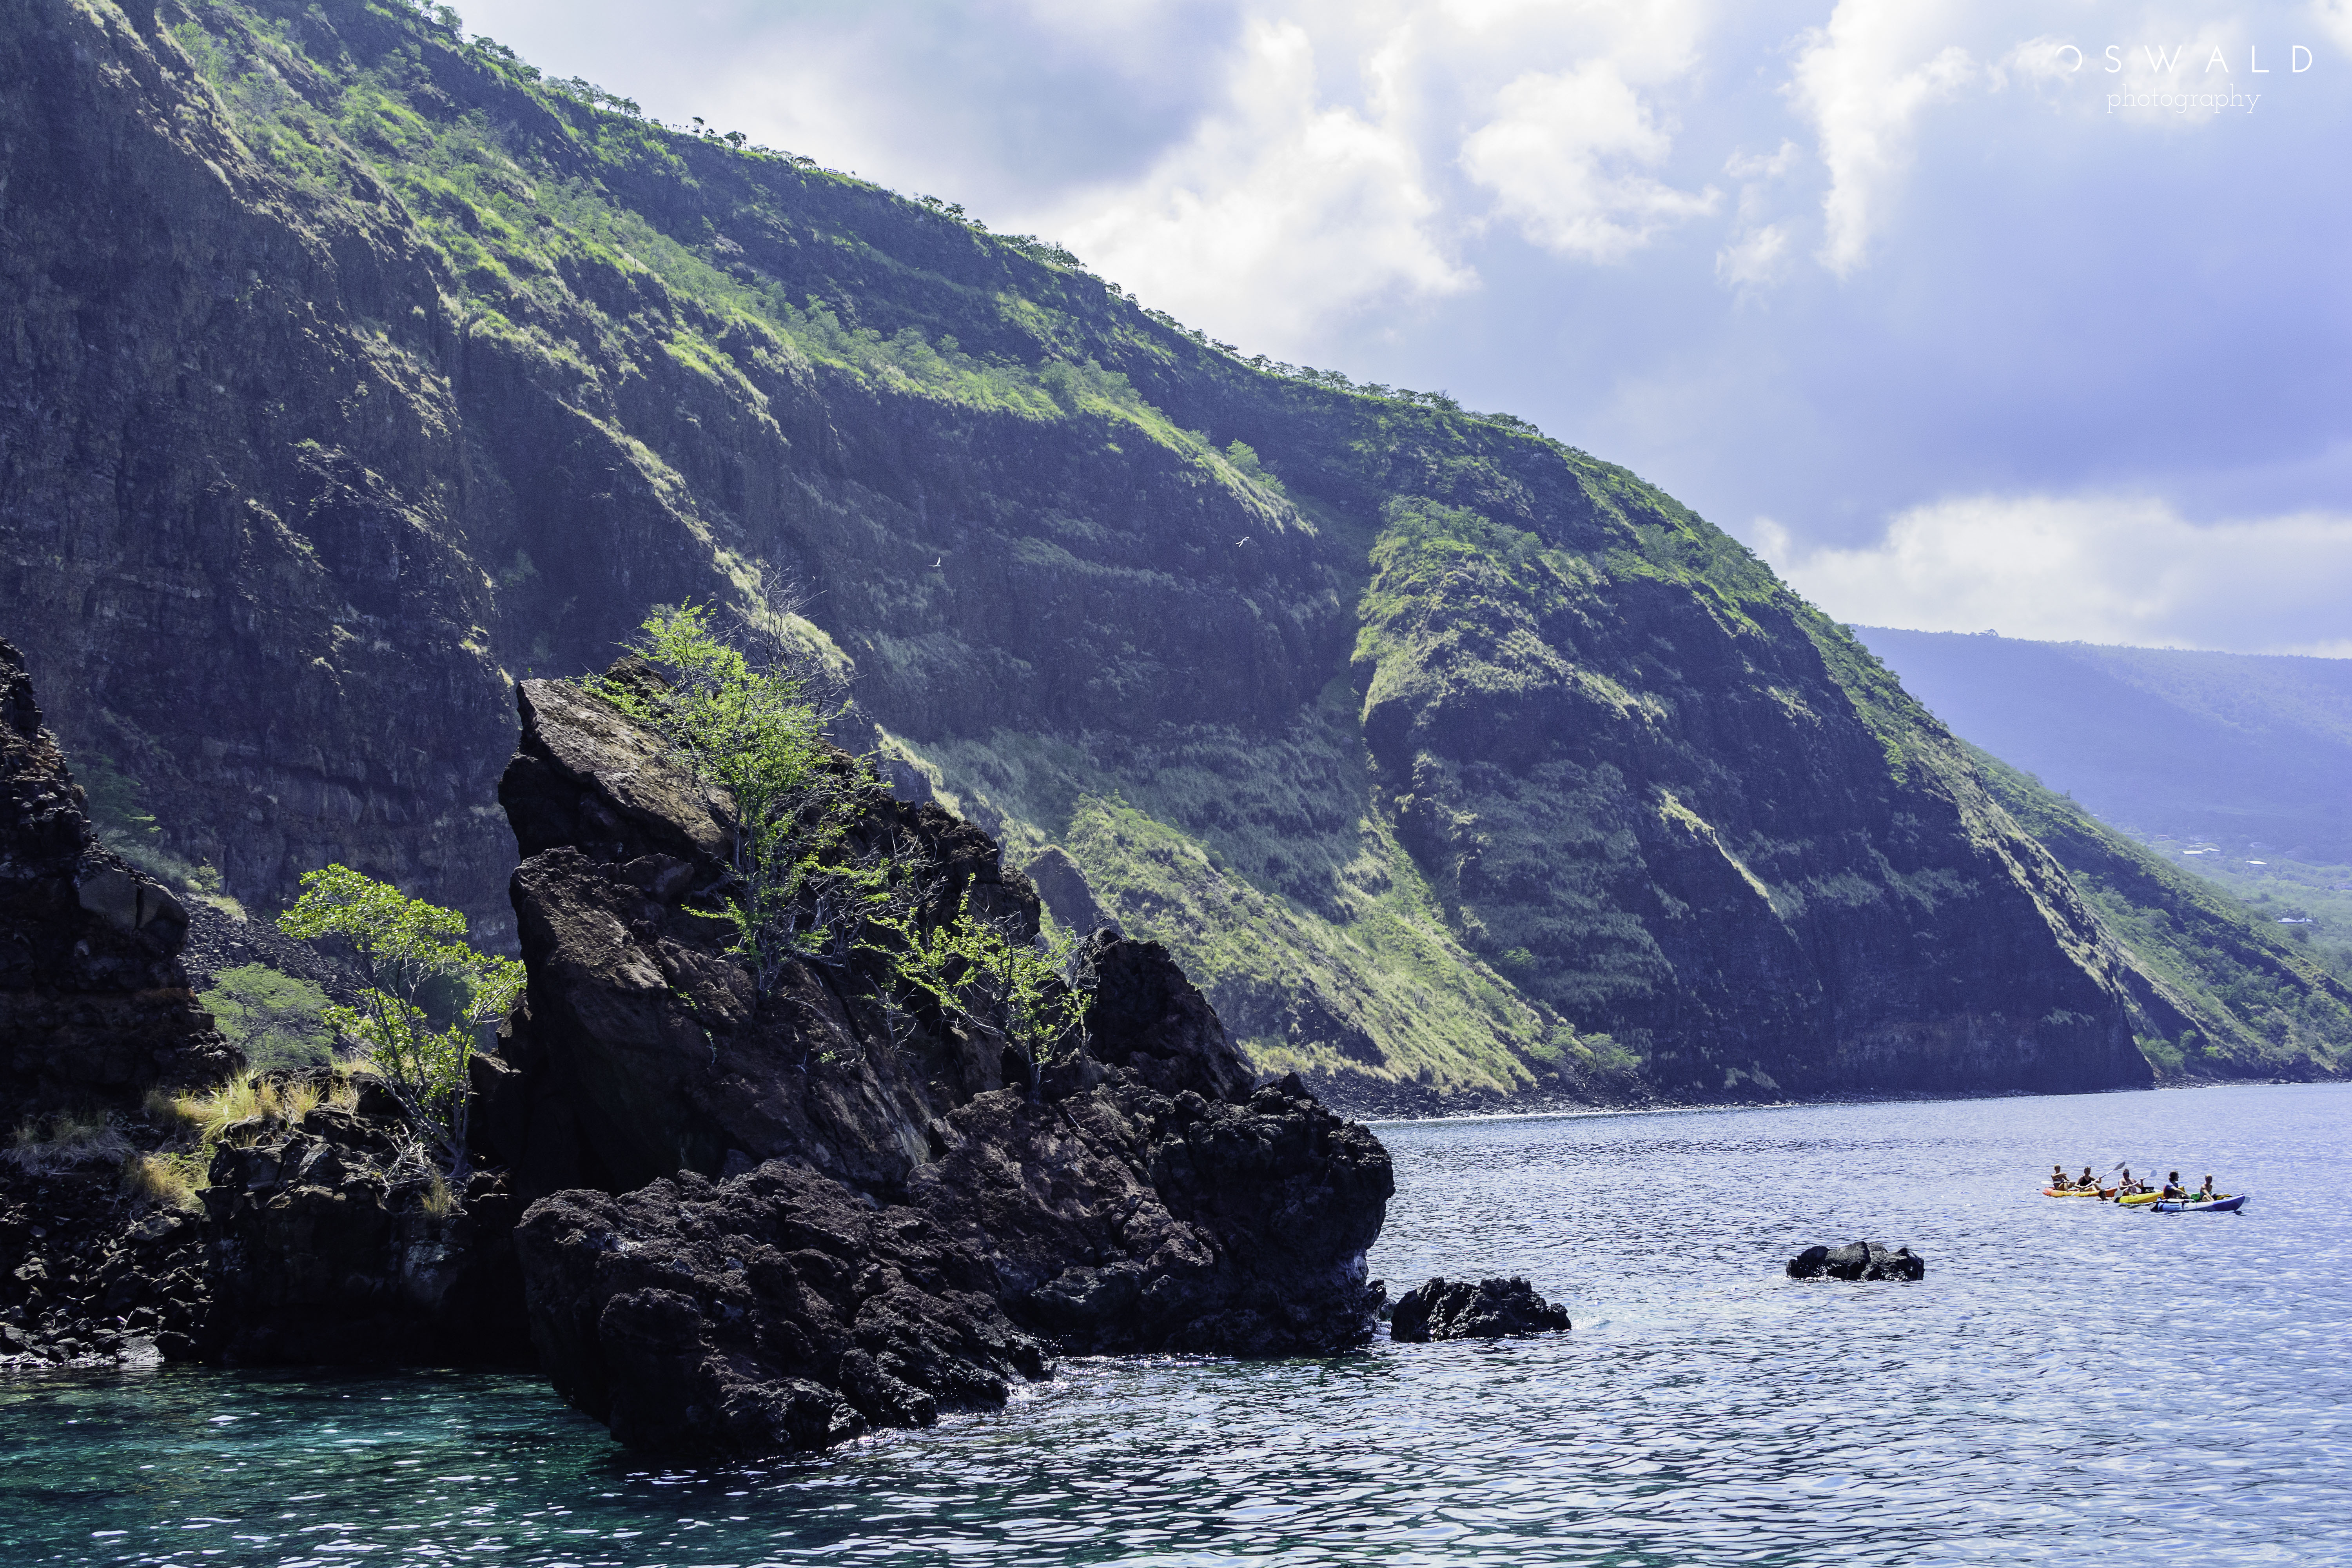 A vivid landscape photo of the hills and shores of Hawaii's Kealakekua Bay, taken from a snorkel tour boat out upon the water.